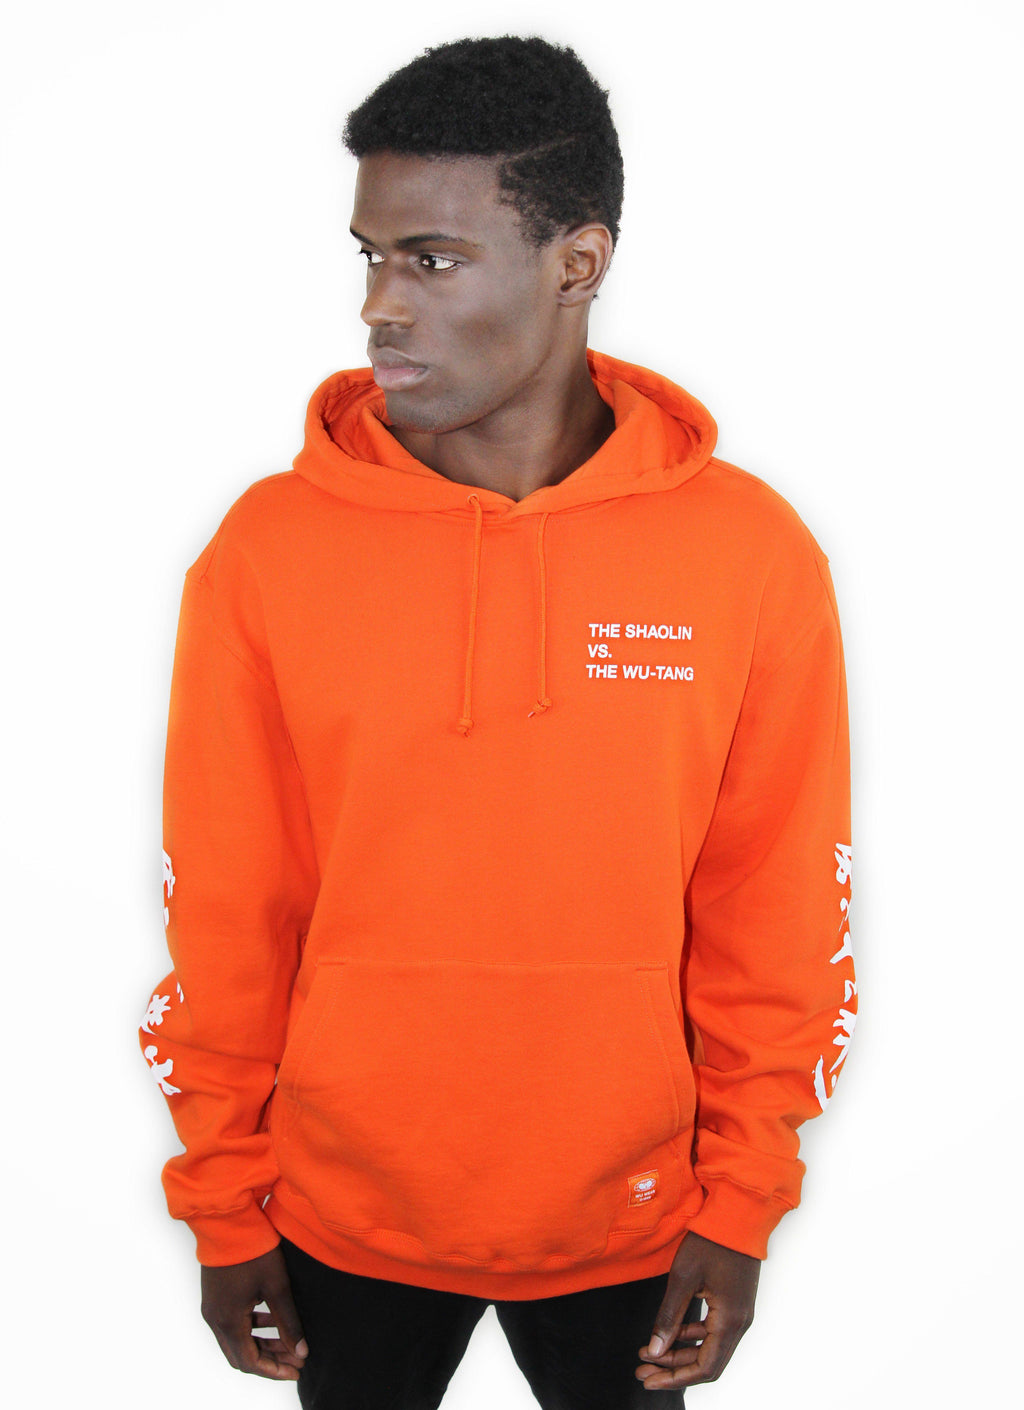 SHAOLIN VS. WU-TANG HOODIE - ORANGE - Wu Wear